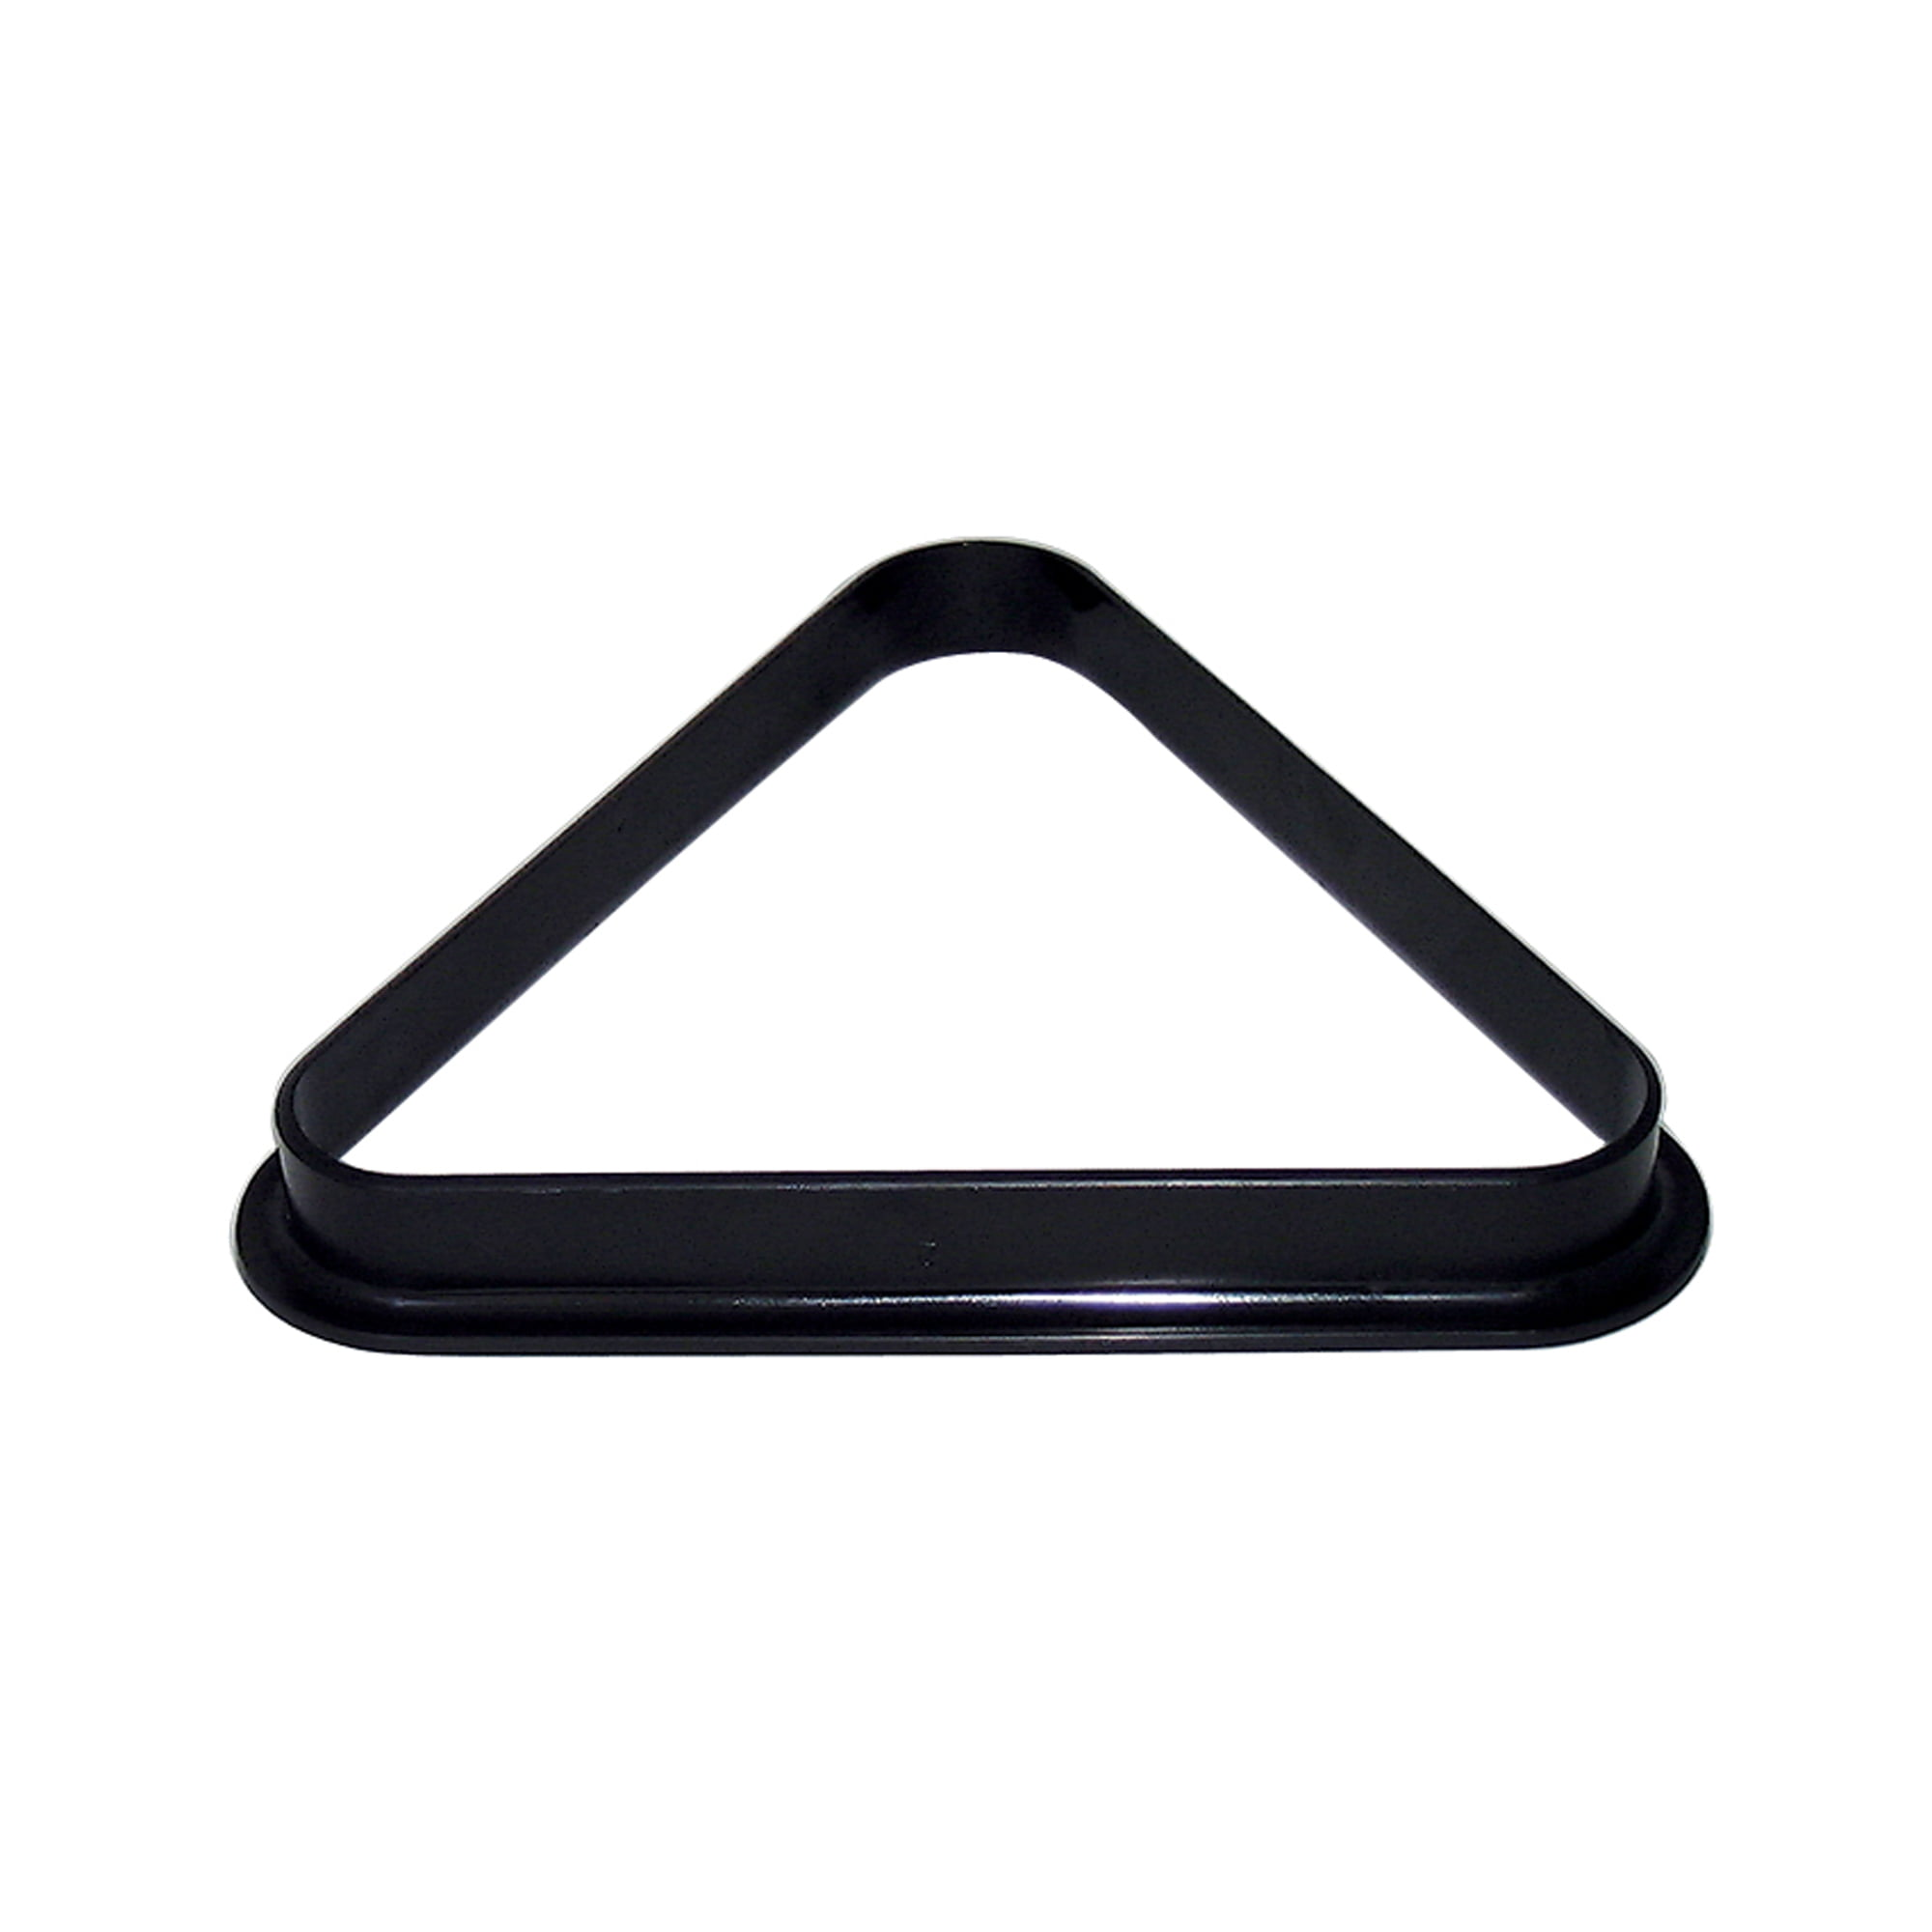 Hathaway Pool Table Billiard Ball Triangle Rack by Blue Wave